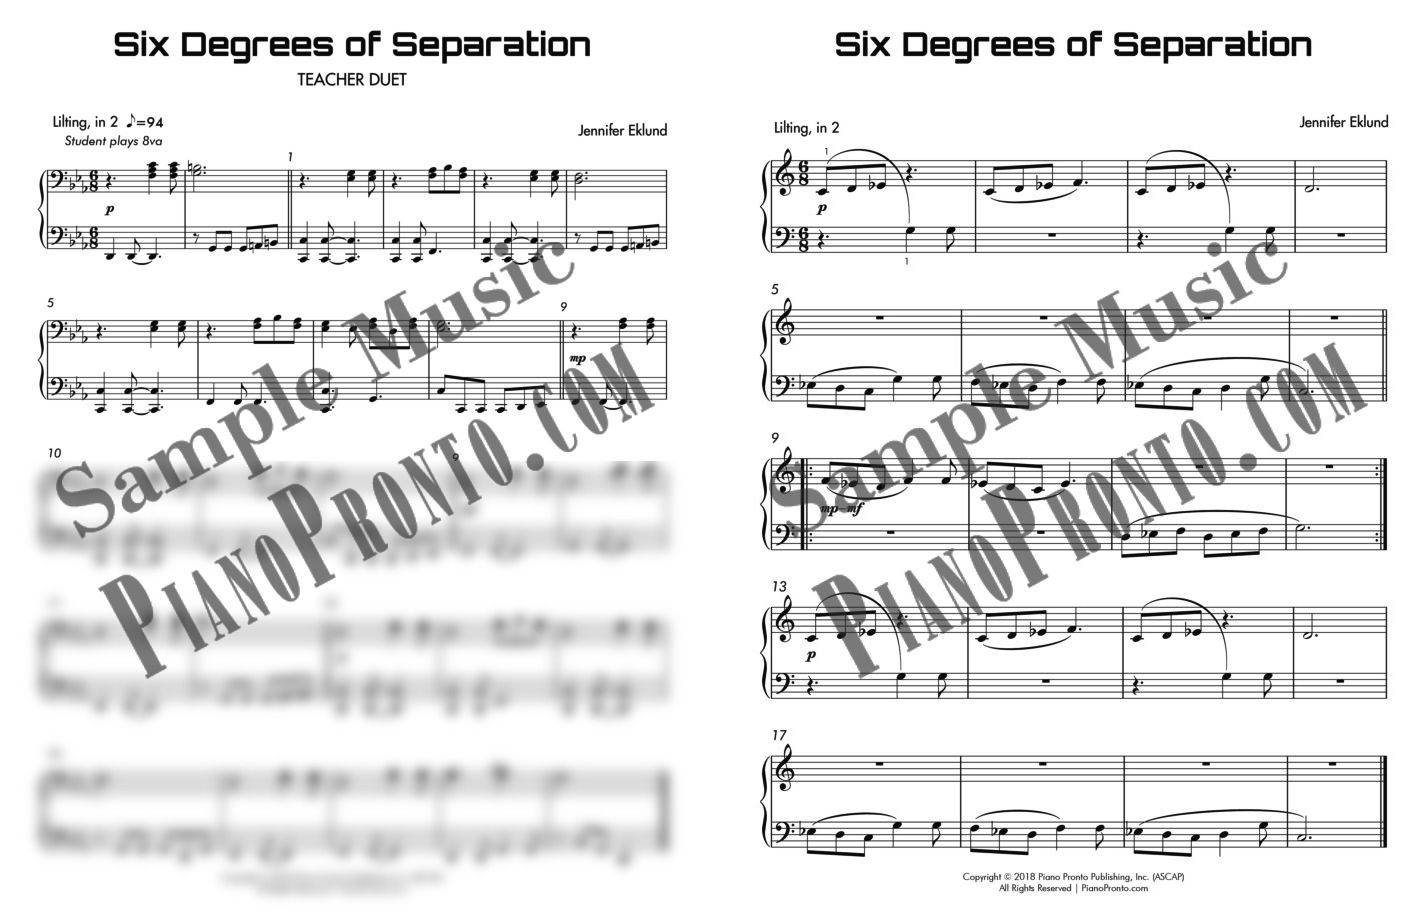 Take A Look Inside Six Degrees Of Separation